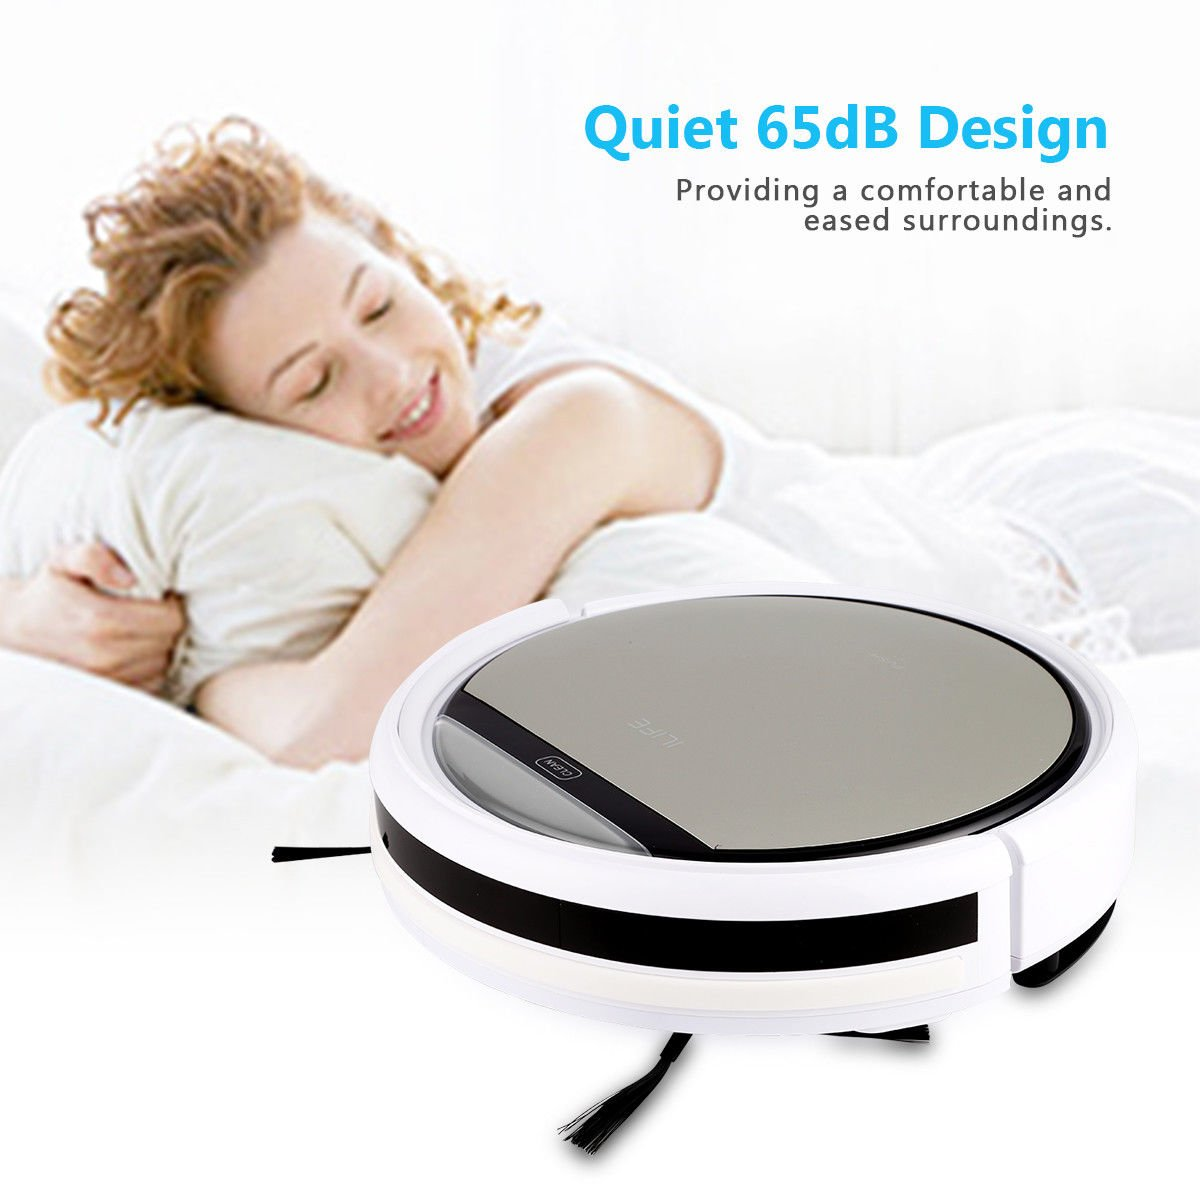 Cleaner Smart Robot Vacuum Cleaning Floor Auto Dust Microfiber Robotic Sweeper Mop Automatic by Alek...Shop (Image #4)